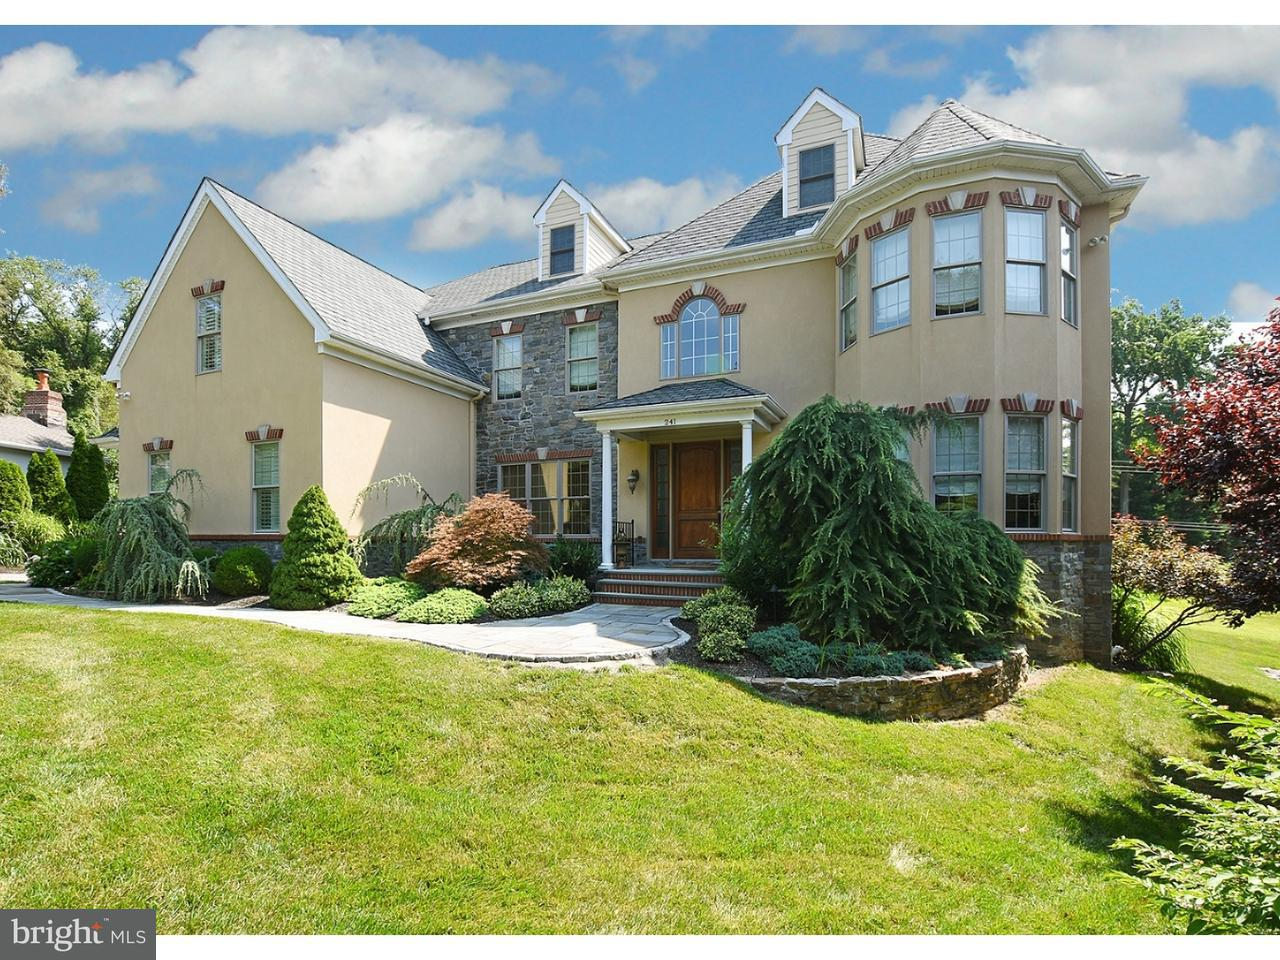 Single Family Home for Sale at 241 STACEY Road Penn Valley, Pennsylvania 19072 United States